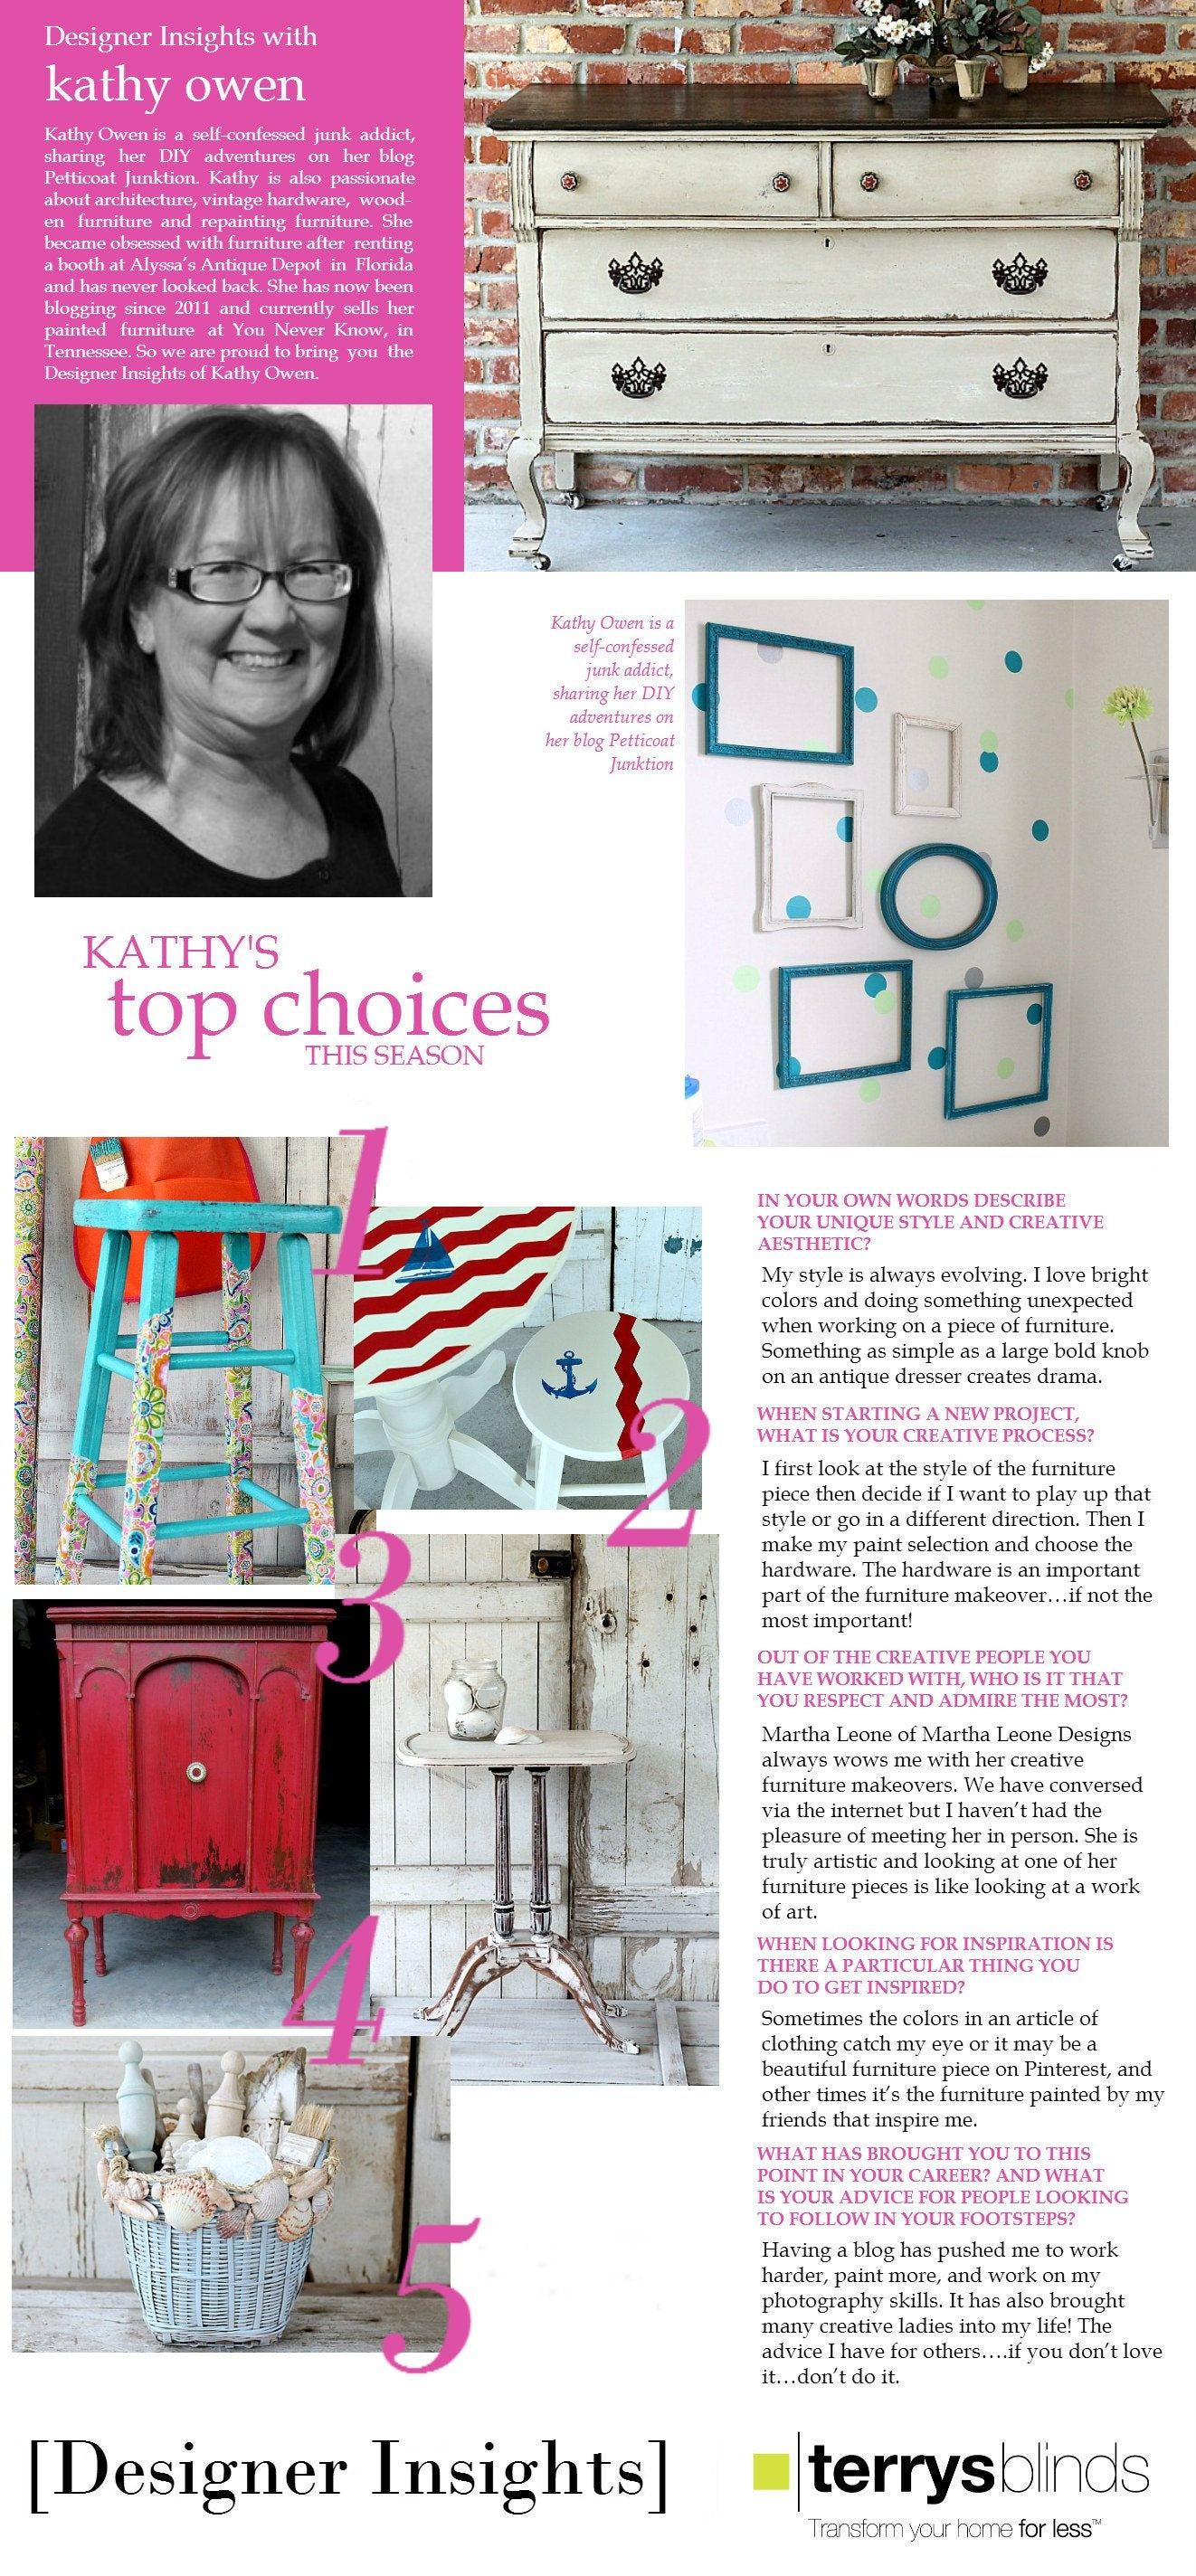 Designer Insights - Kathy Owen